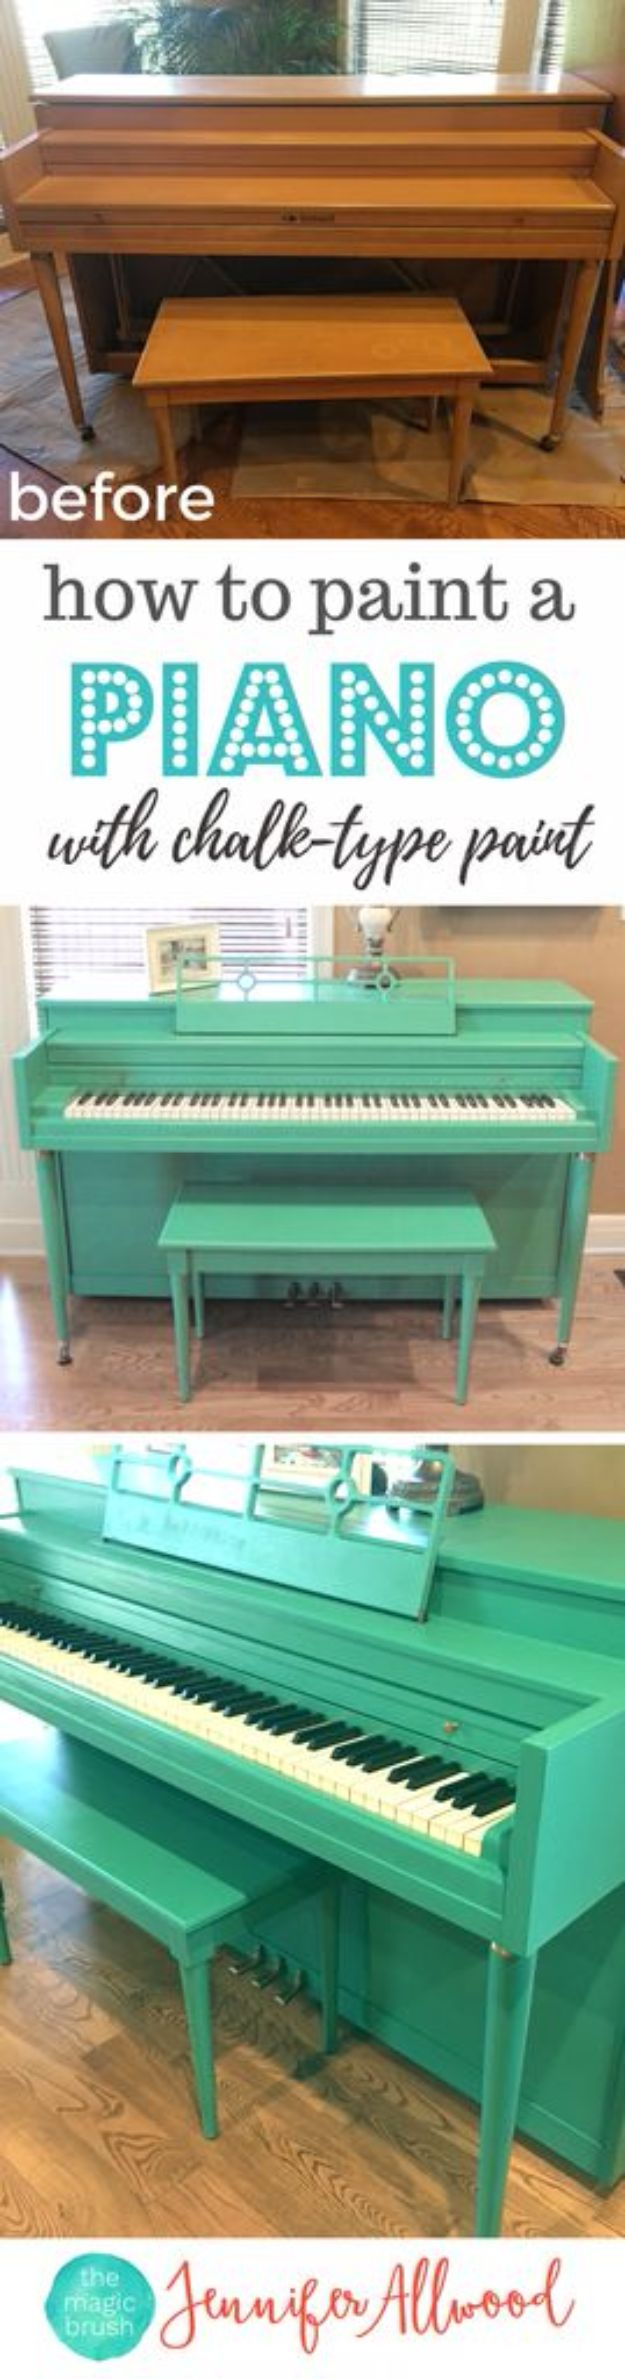 DIY Painting Hacks - Paint An Old Piano - Easy Ways To Shortcut House Painting - Wall Prep, Painters Tape, Trim, Edging, Ceiling, Exterior Cutting In, Furniture and Crafts Paint Tips - Paint Your House Or Your Room With These Time Saving Painter Hacks and Quick Tricks http://diyjoy.com/diy-painting-hacks